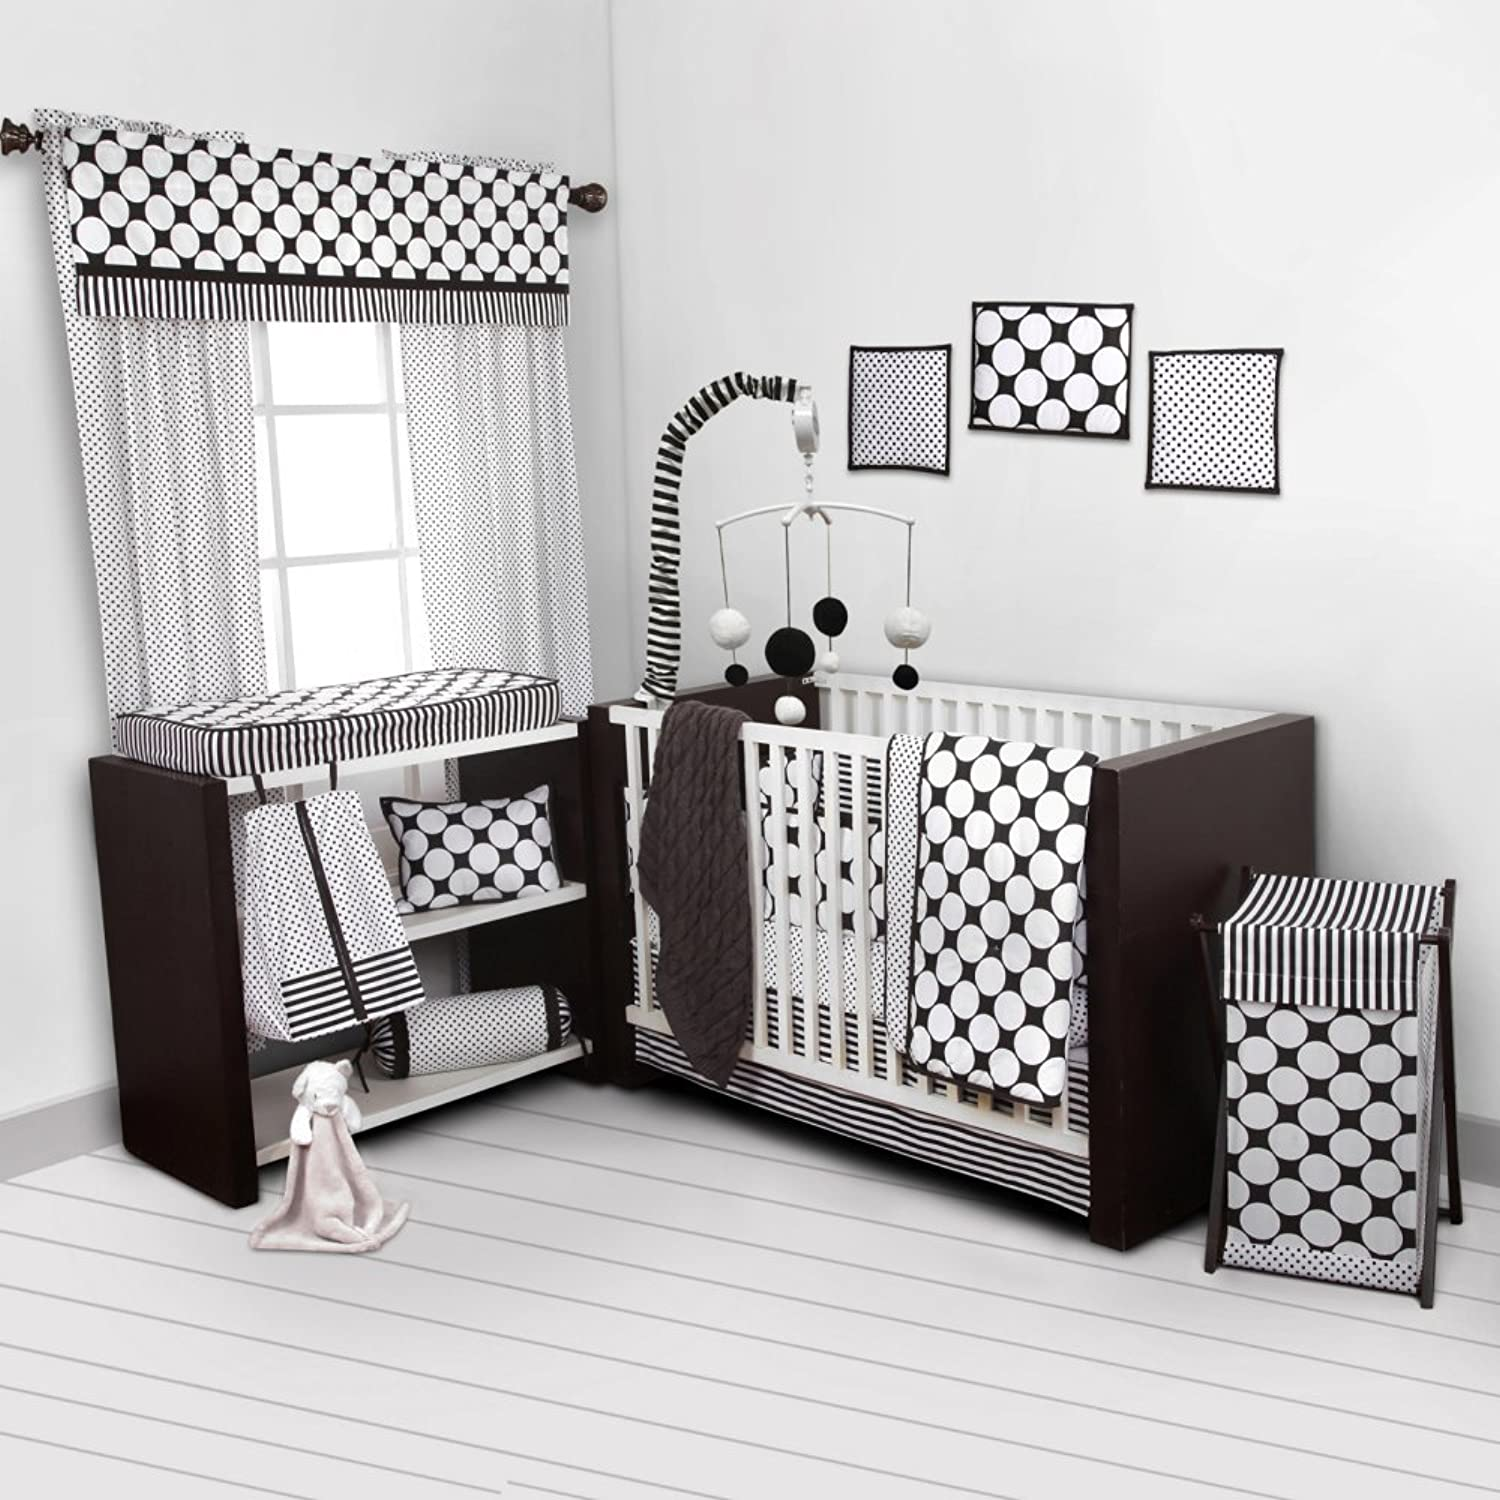 Bacati Dots Pinstripes Black White 10 Piece Crib Set Including Bumper Pad